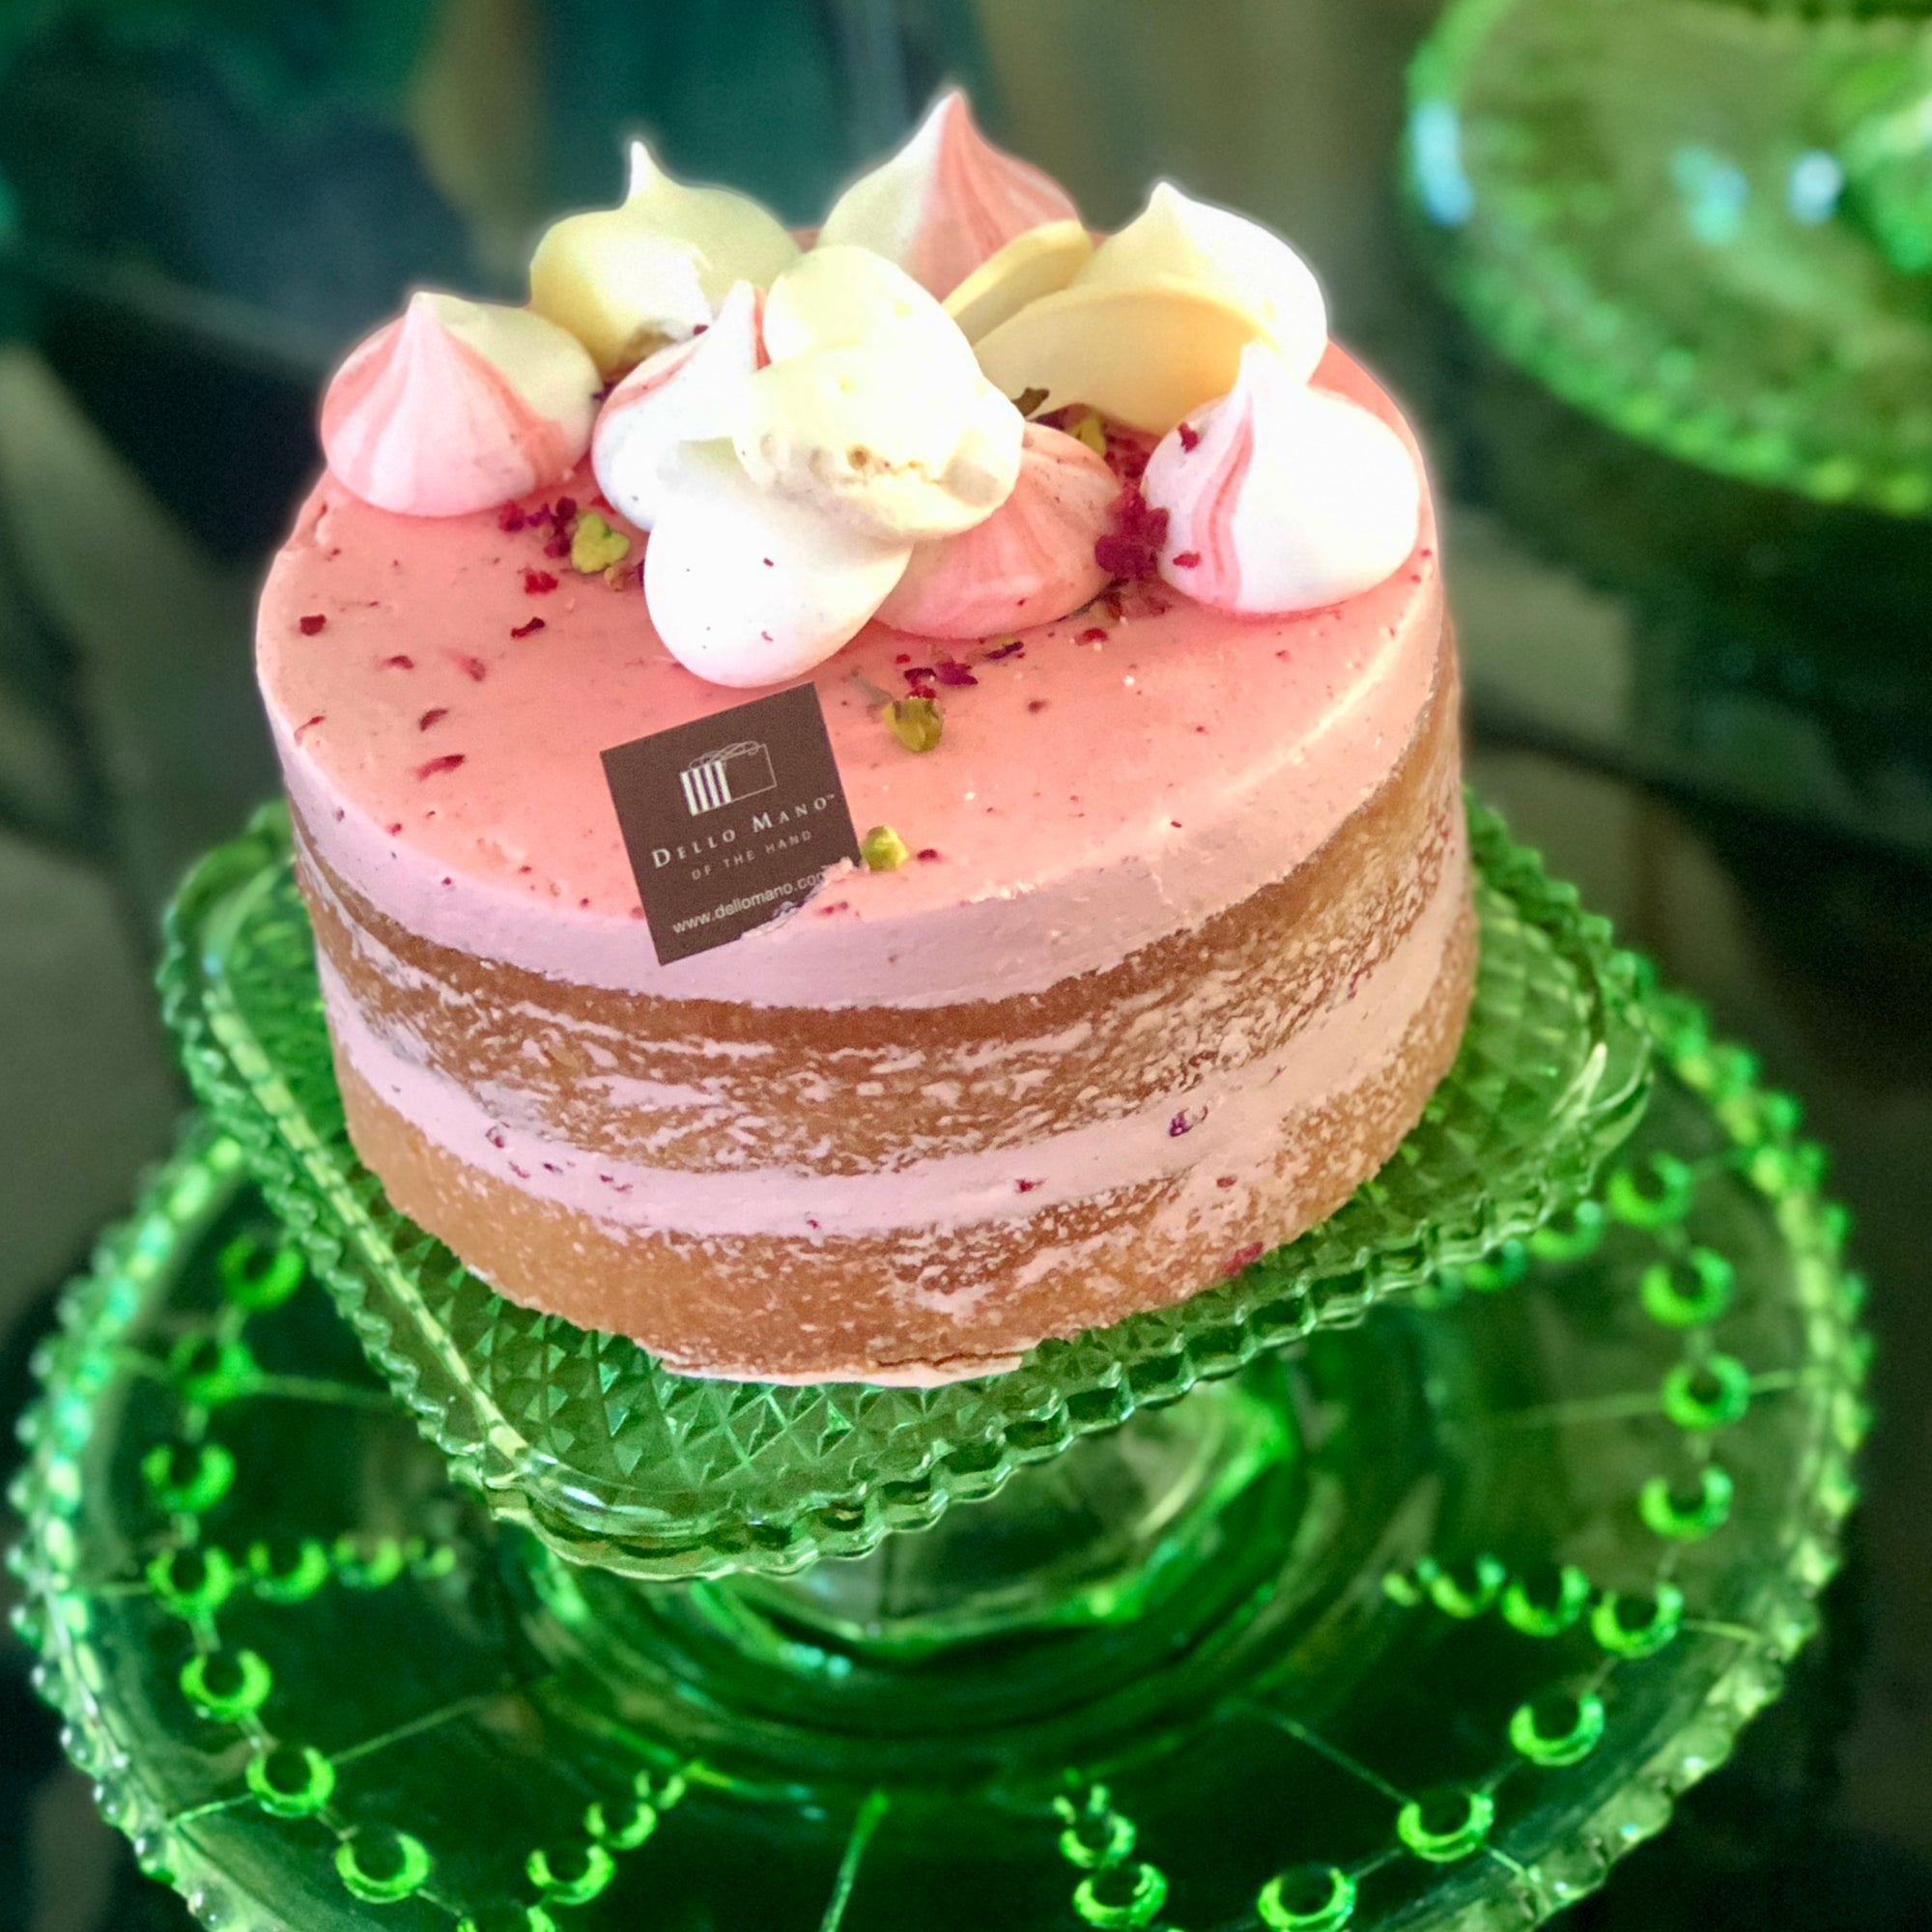 A pink cake on a green stand with Dello Mano Label